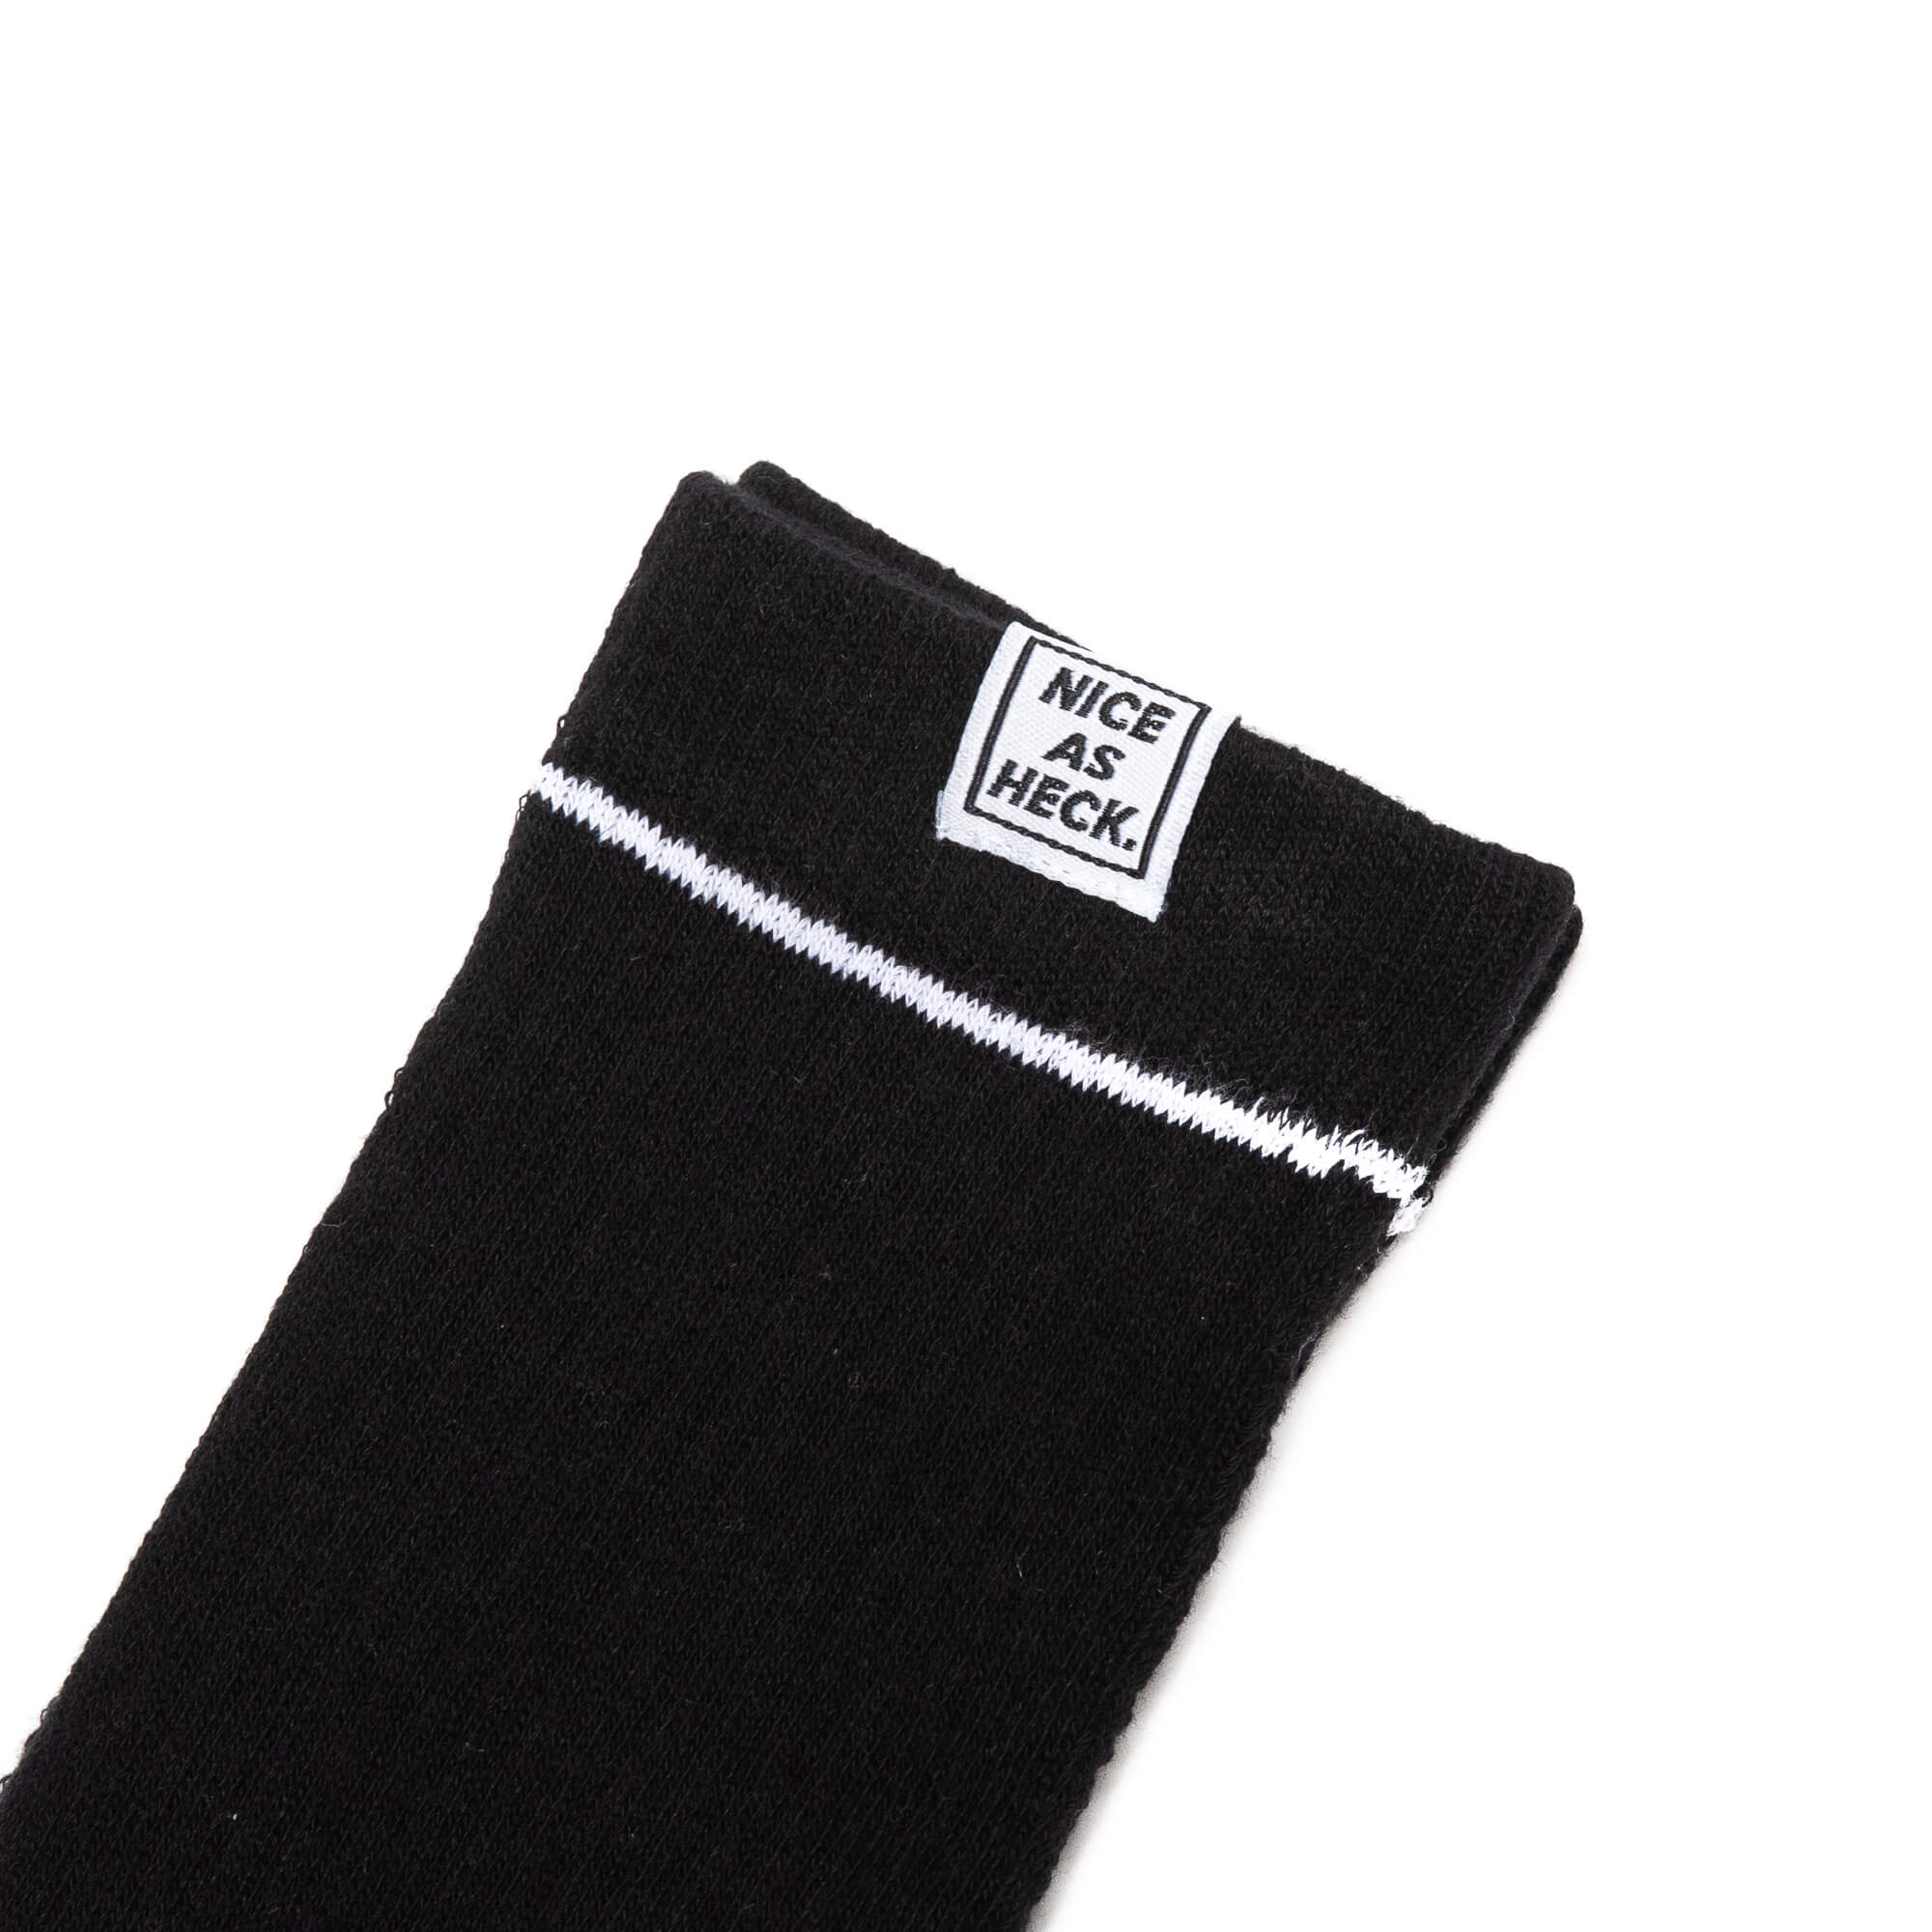 nice as heck logo on rim of socks